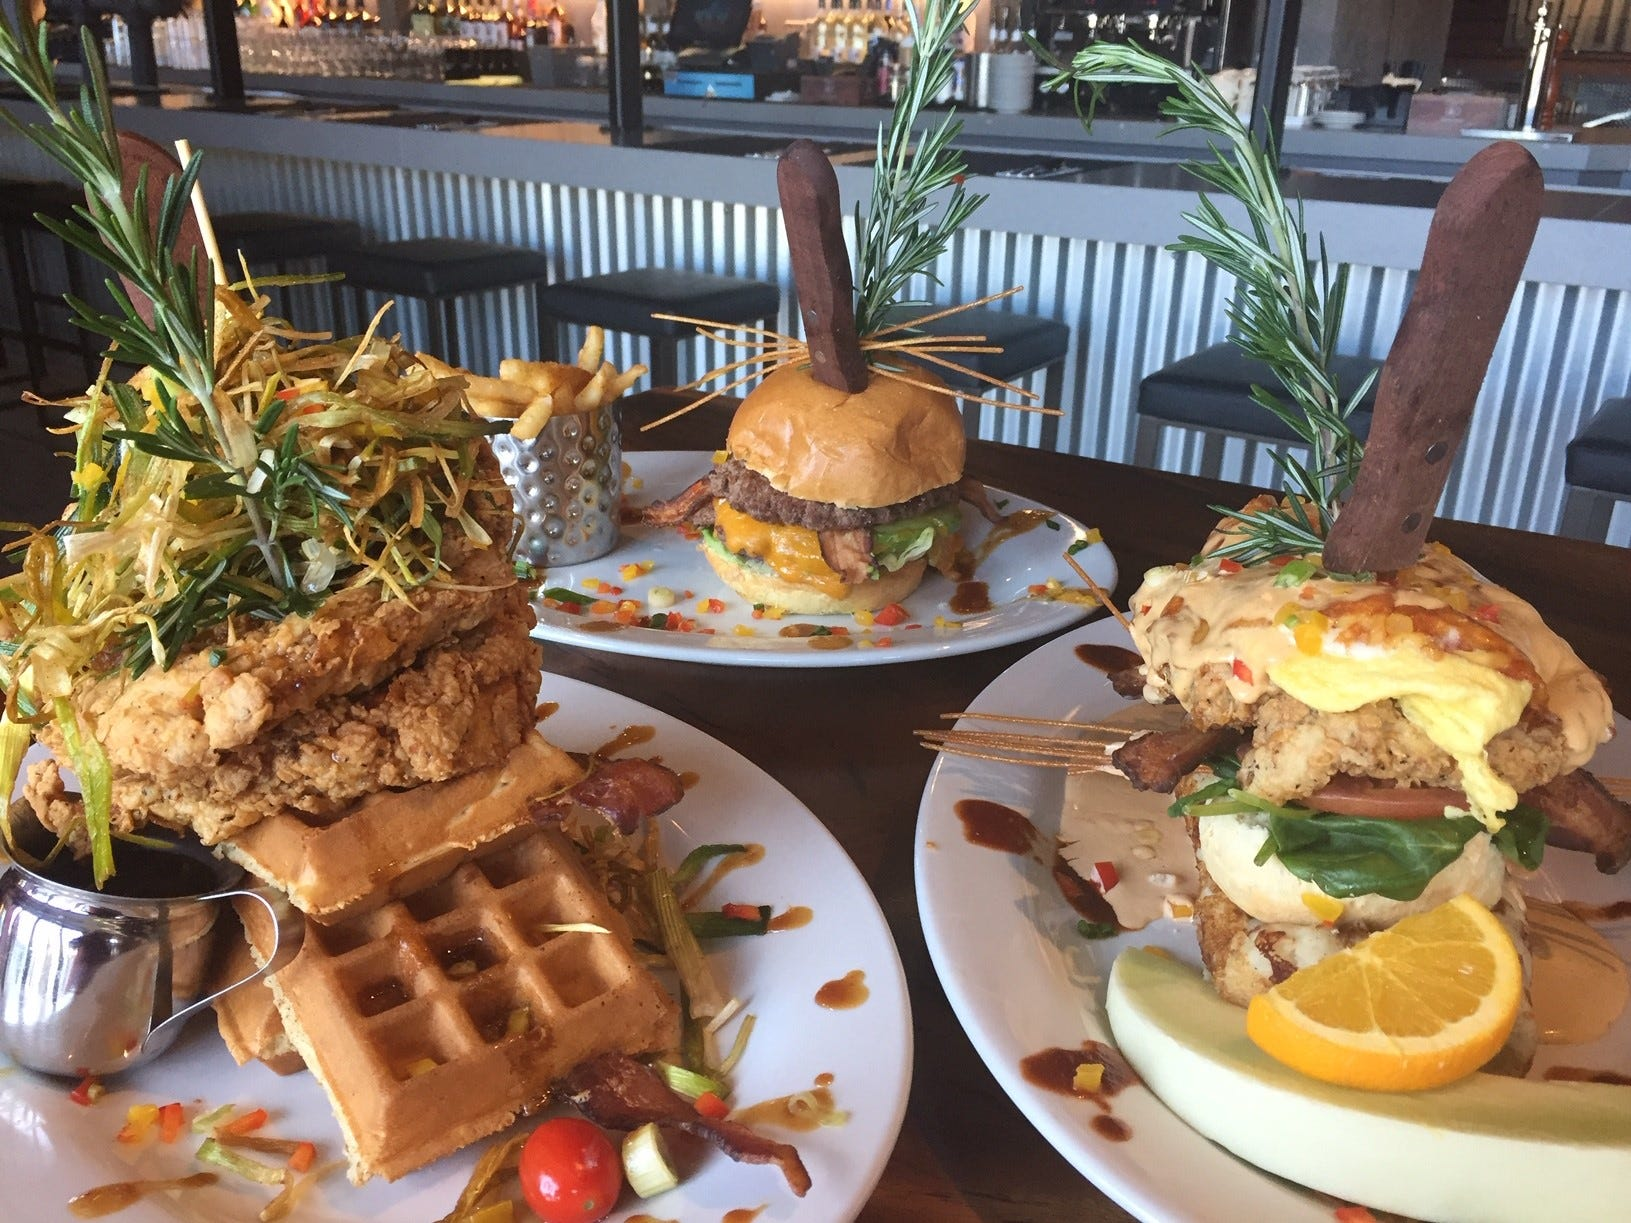 Clockwise from left, Hash House a Go Go's Crisp Sage Chicken and Waffles, a stuffed cheeseburger and Crisp Sage Chicken Benedict. The restaurant at Moorestown Mall offers brunch til 4 p.m. daily.